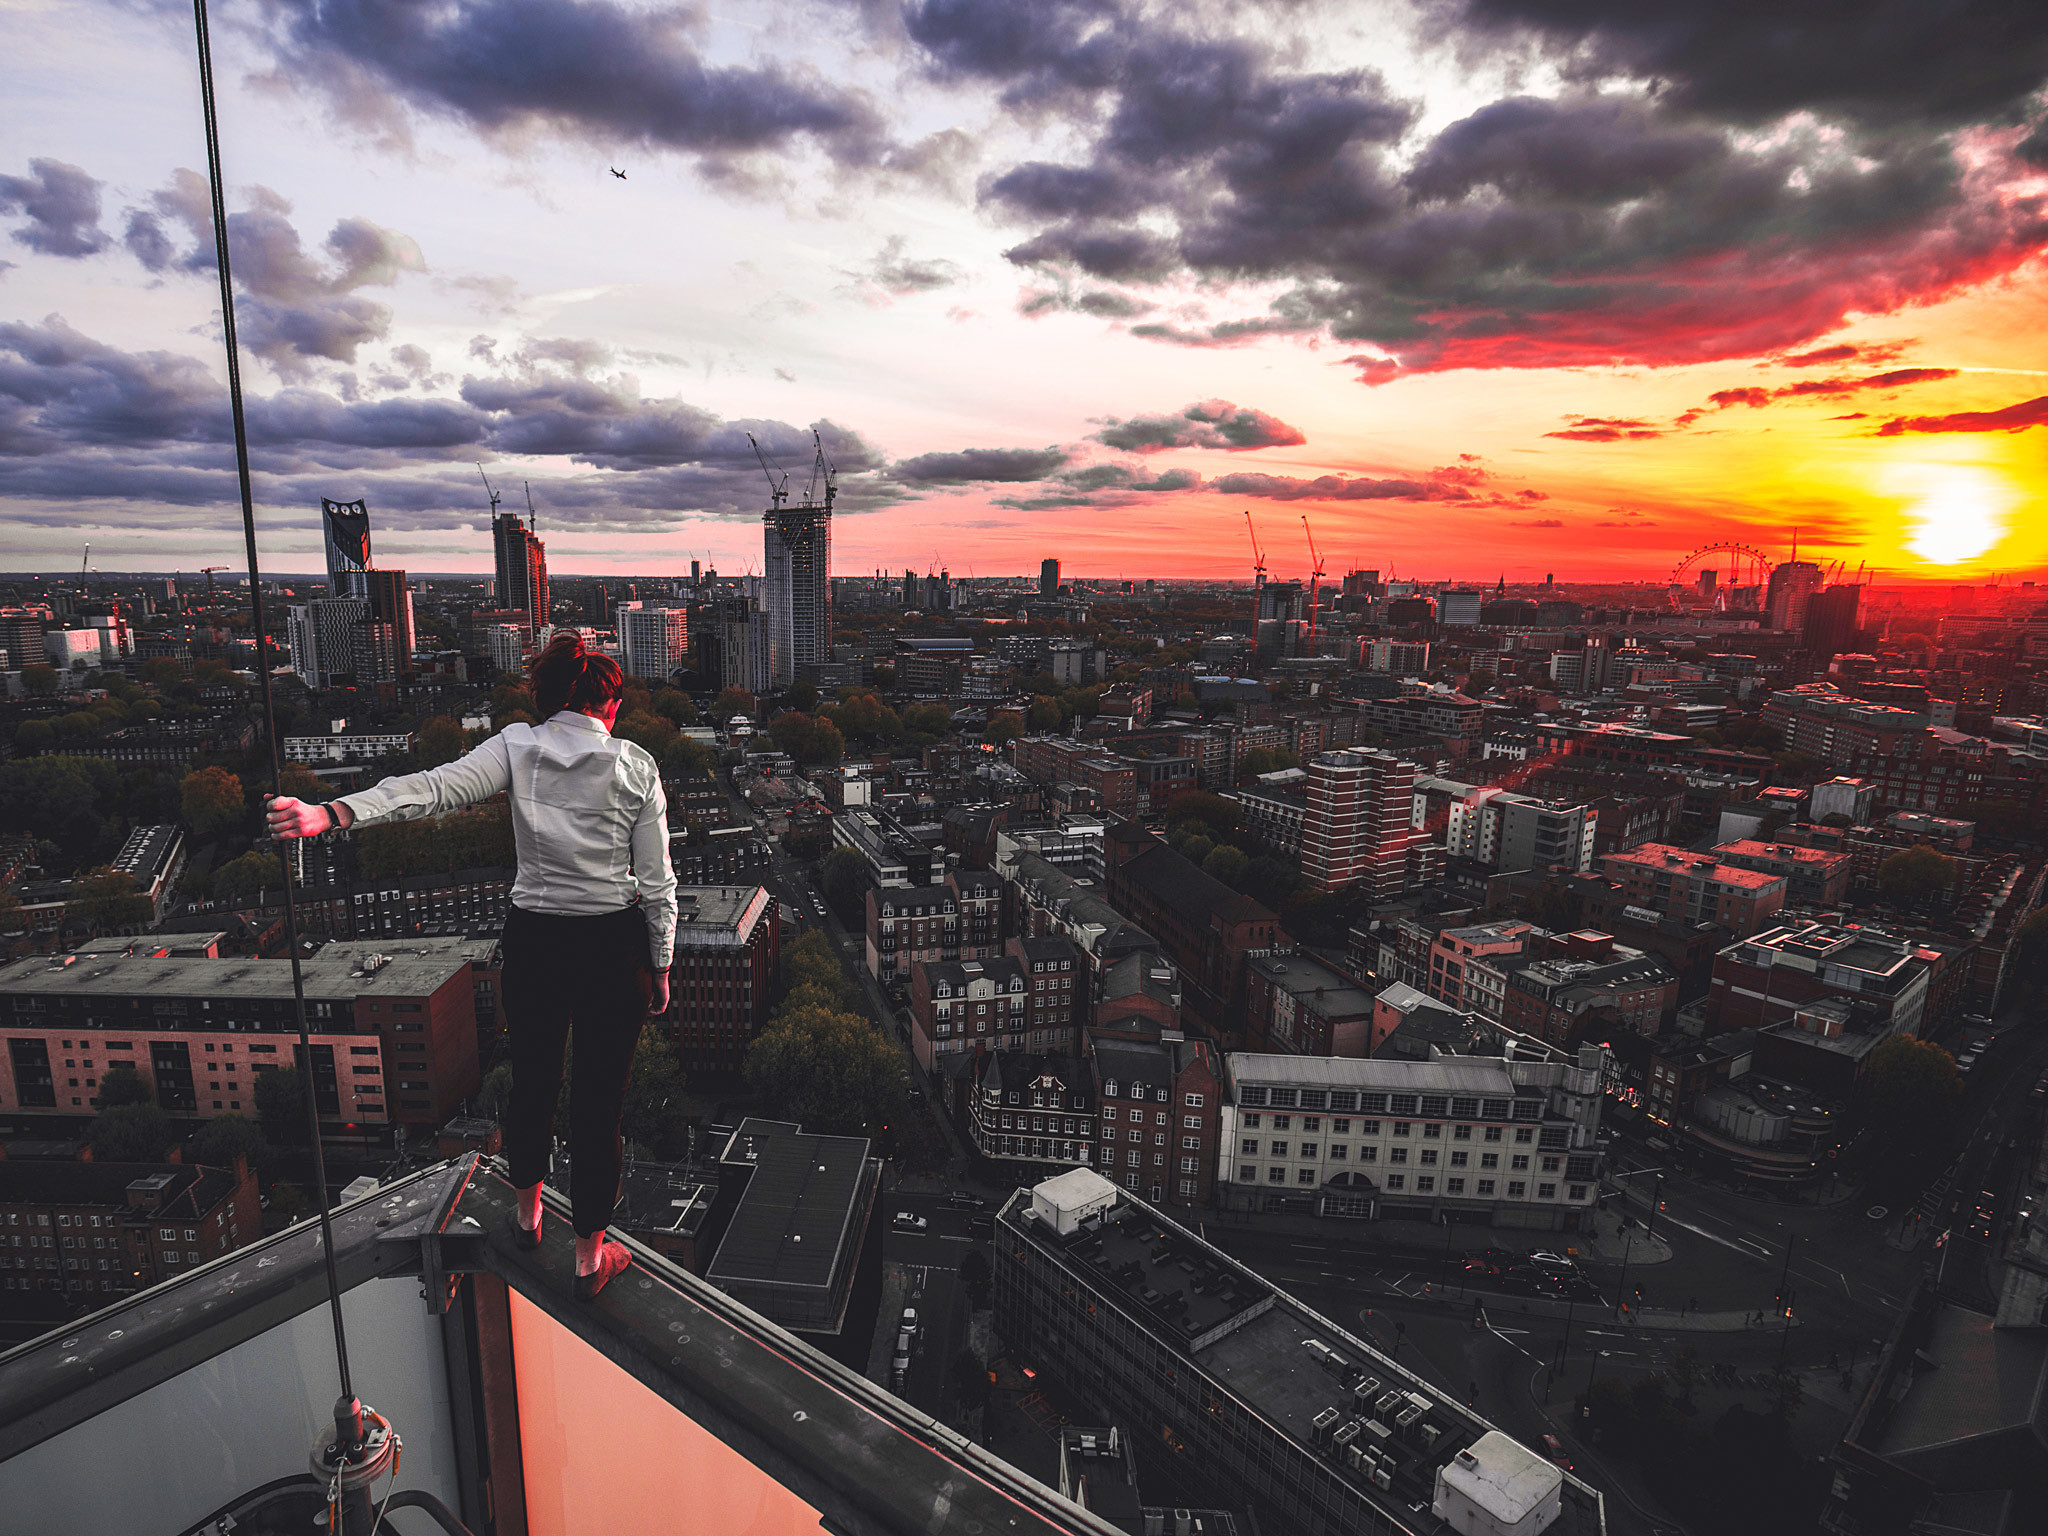 'They call us reckless daredevils': meet one of London's death-defying 'rooftoppers'